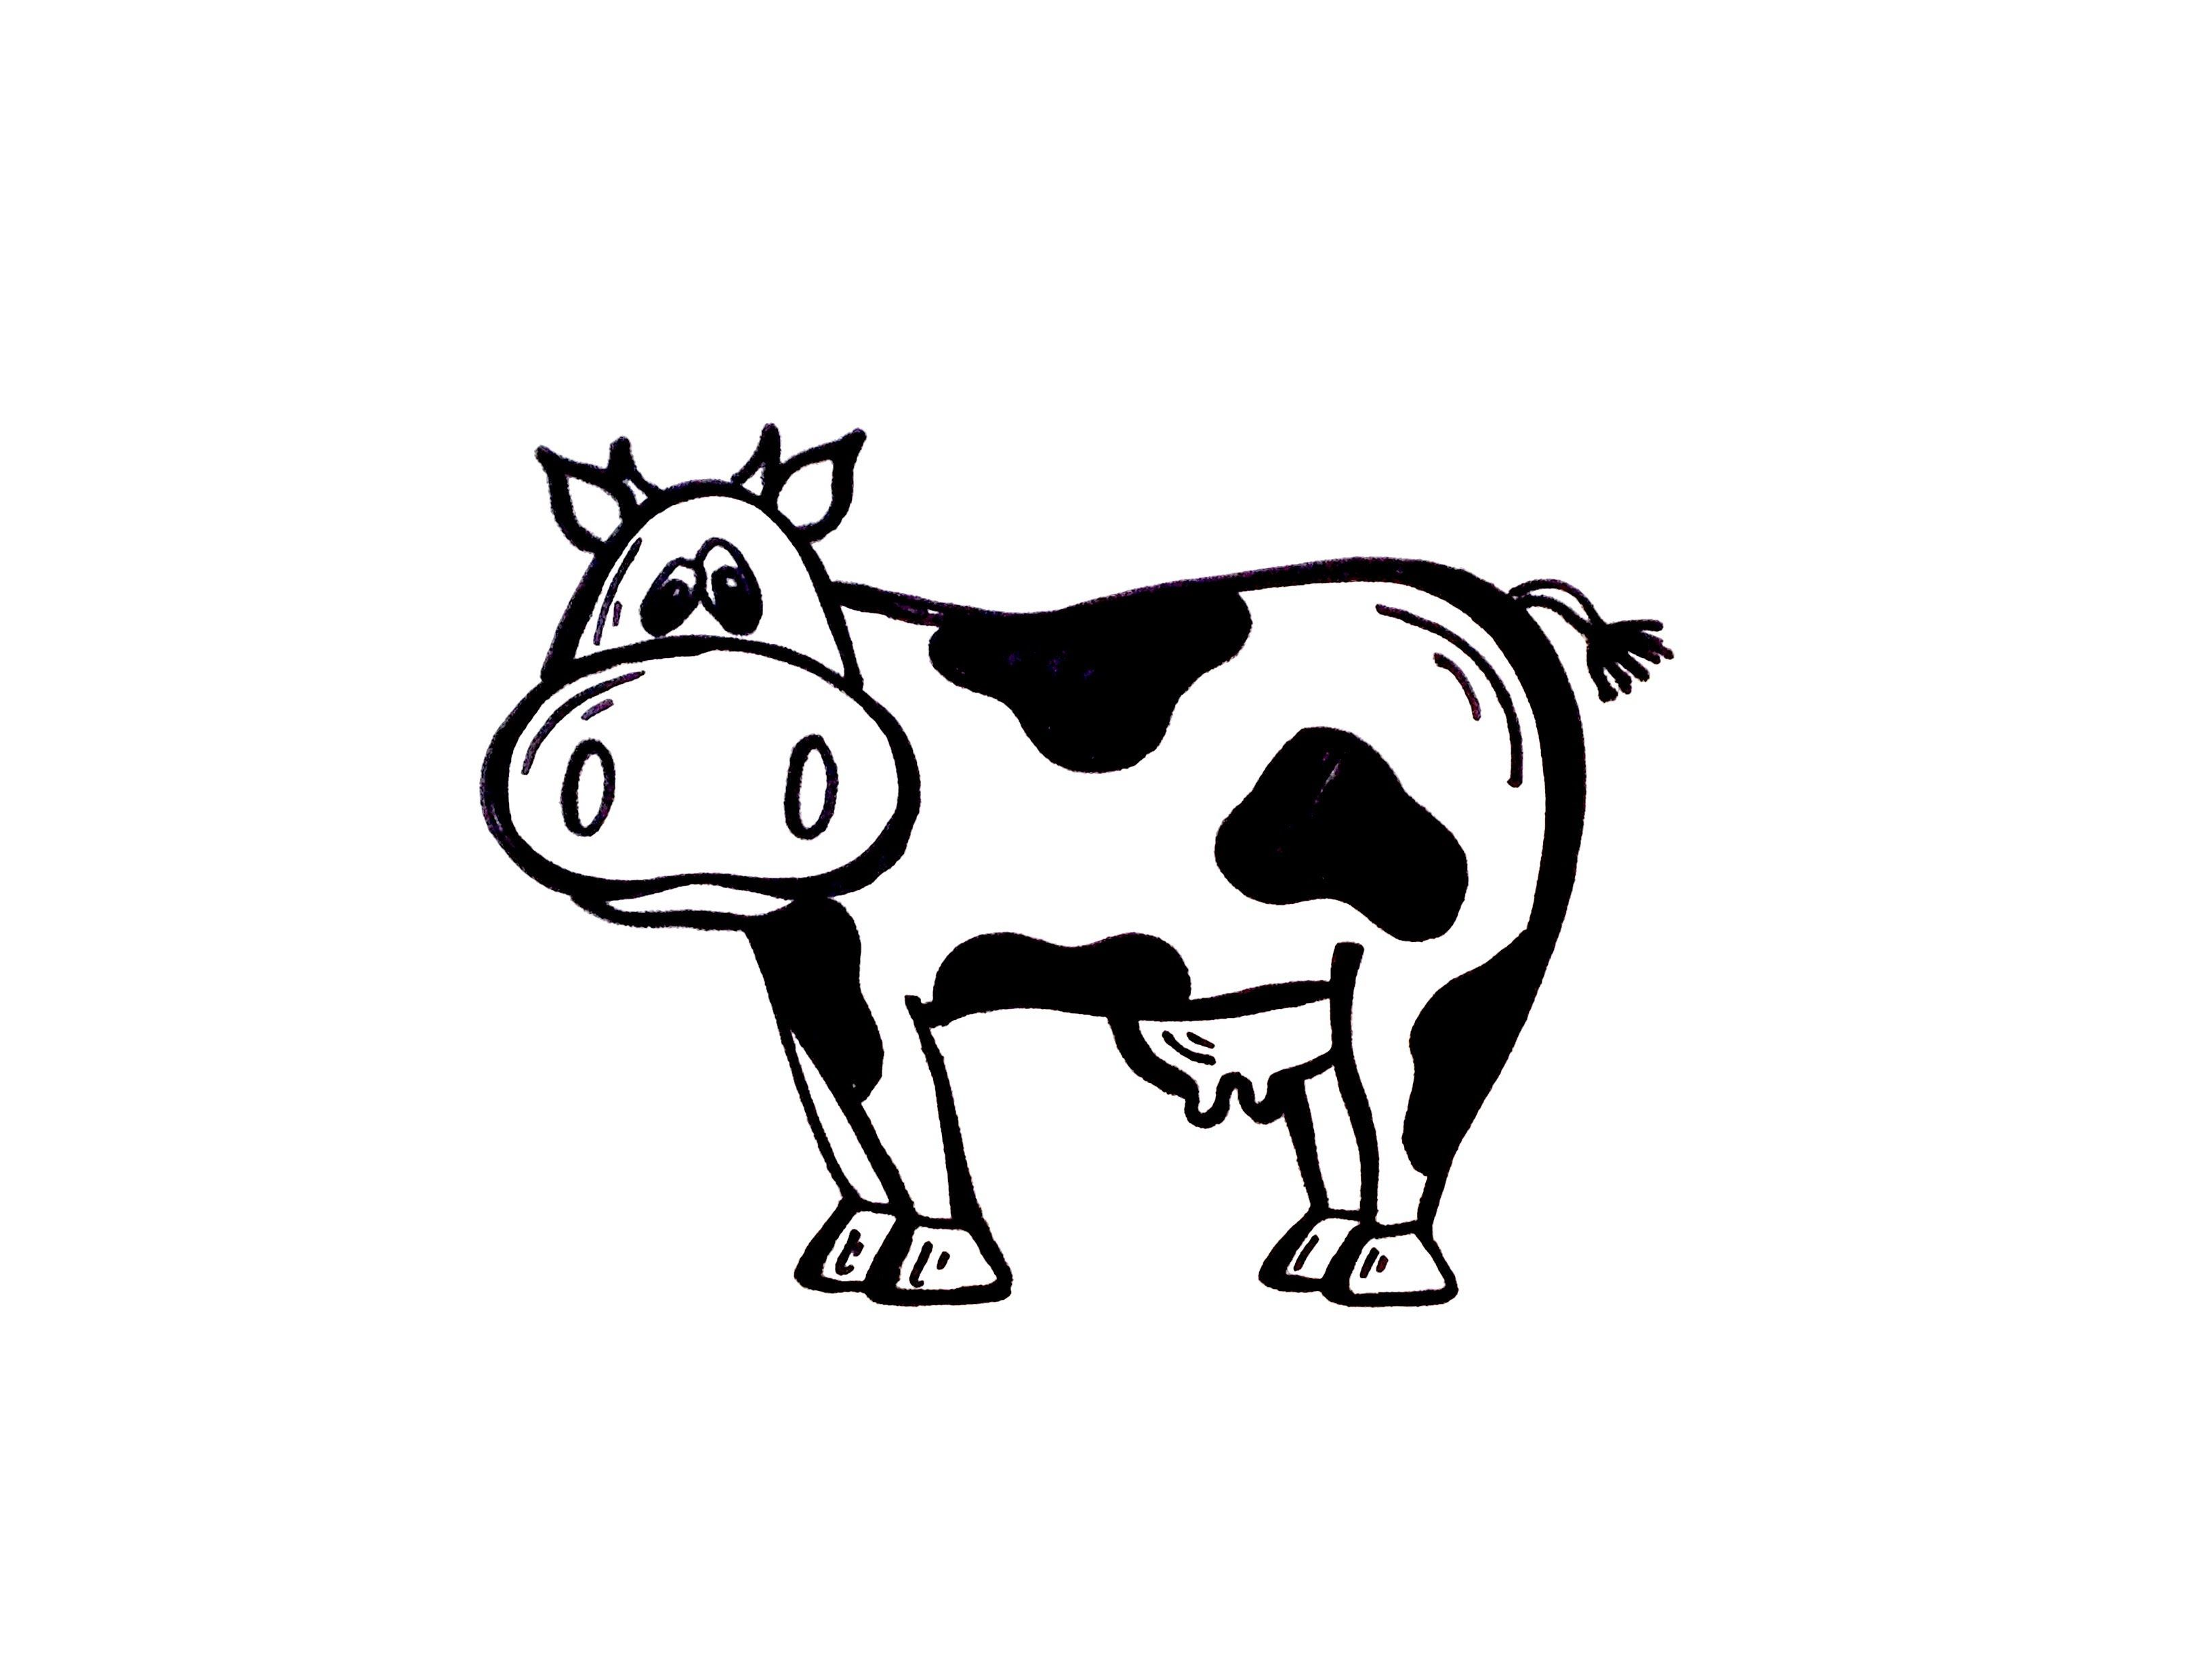 Line Art Photo Tutorial : Drawing lesson: how to draw a cow. grab paper and marker